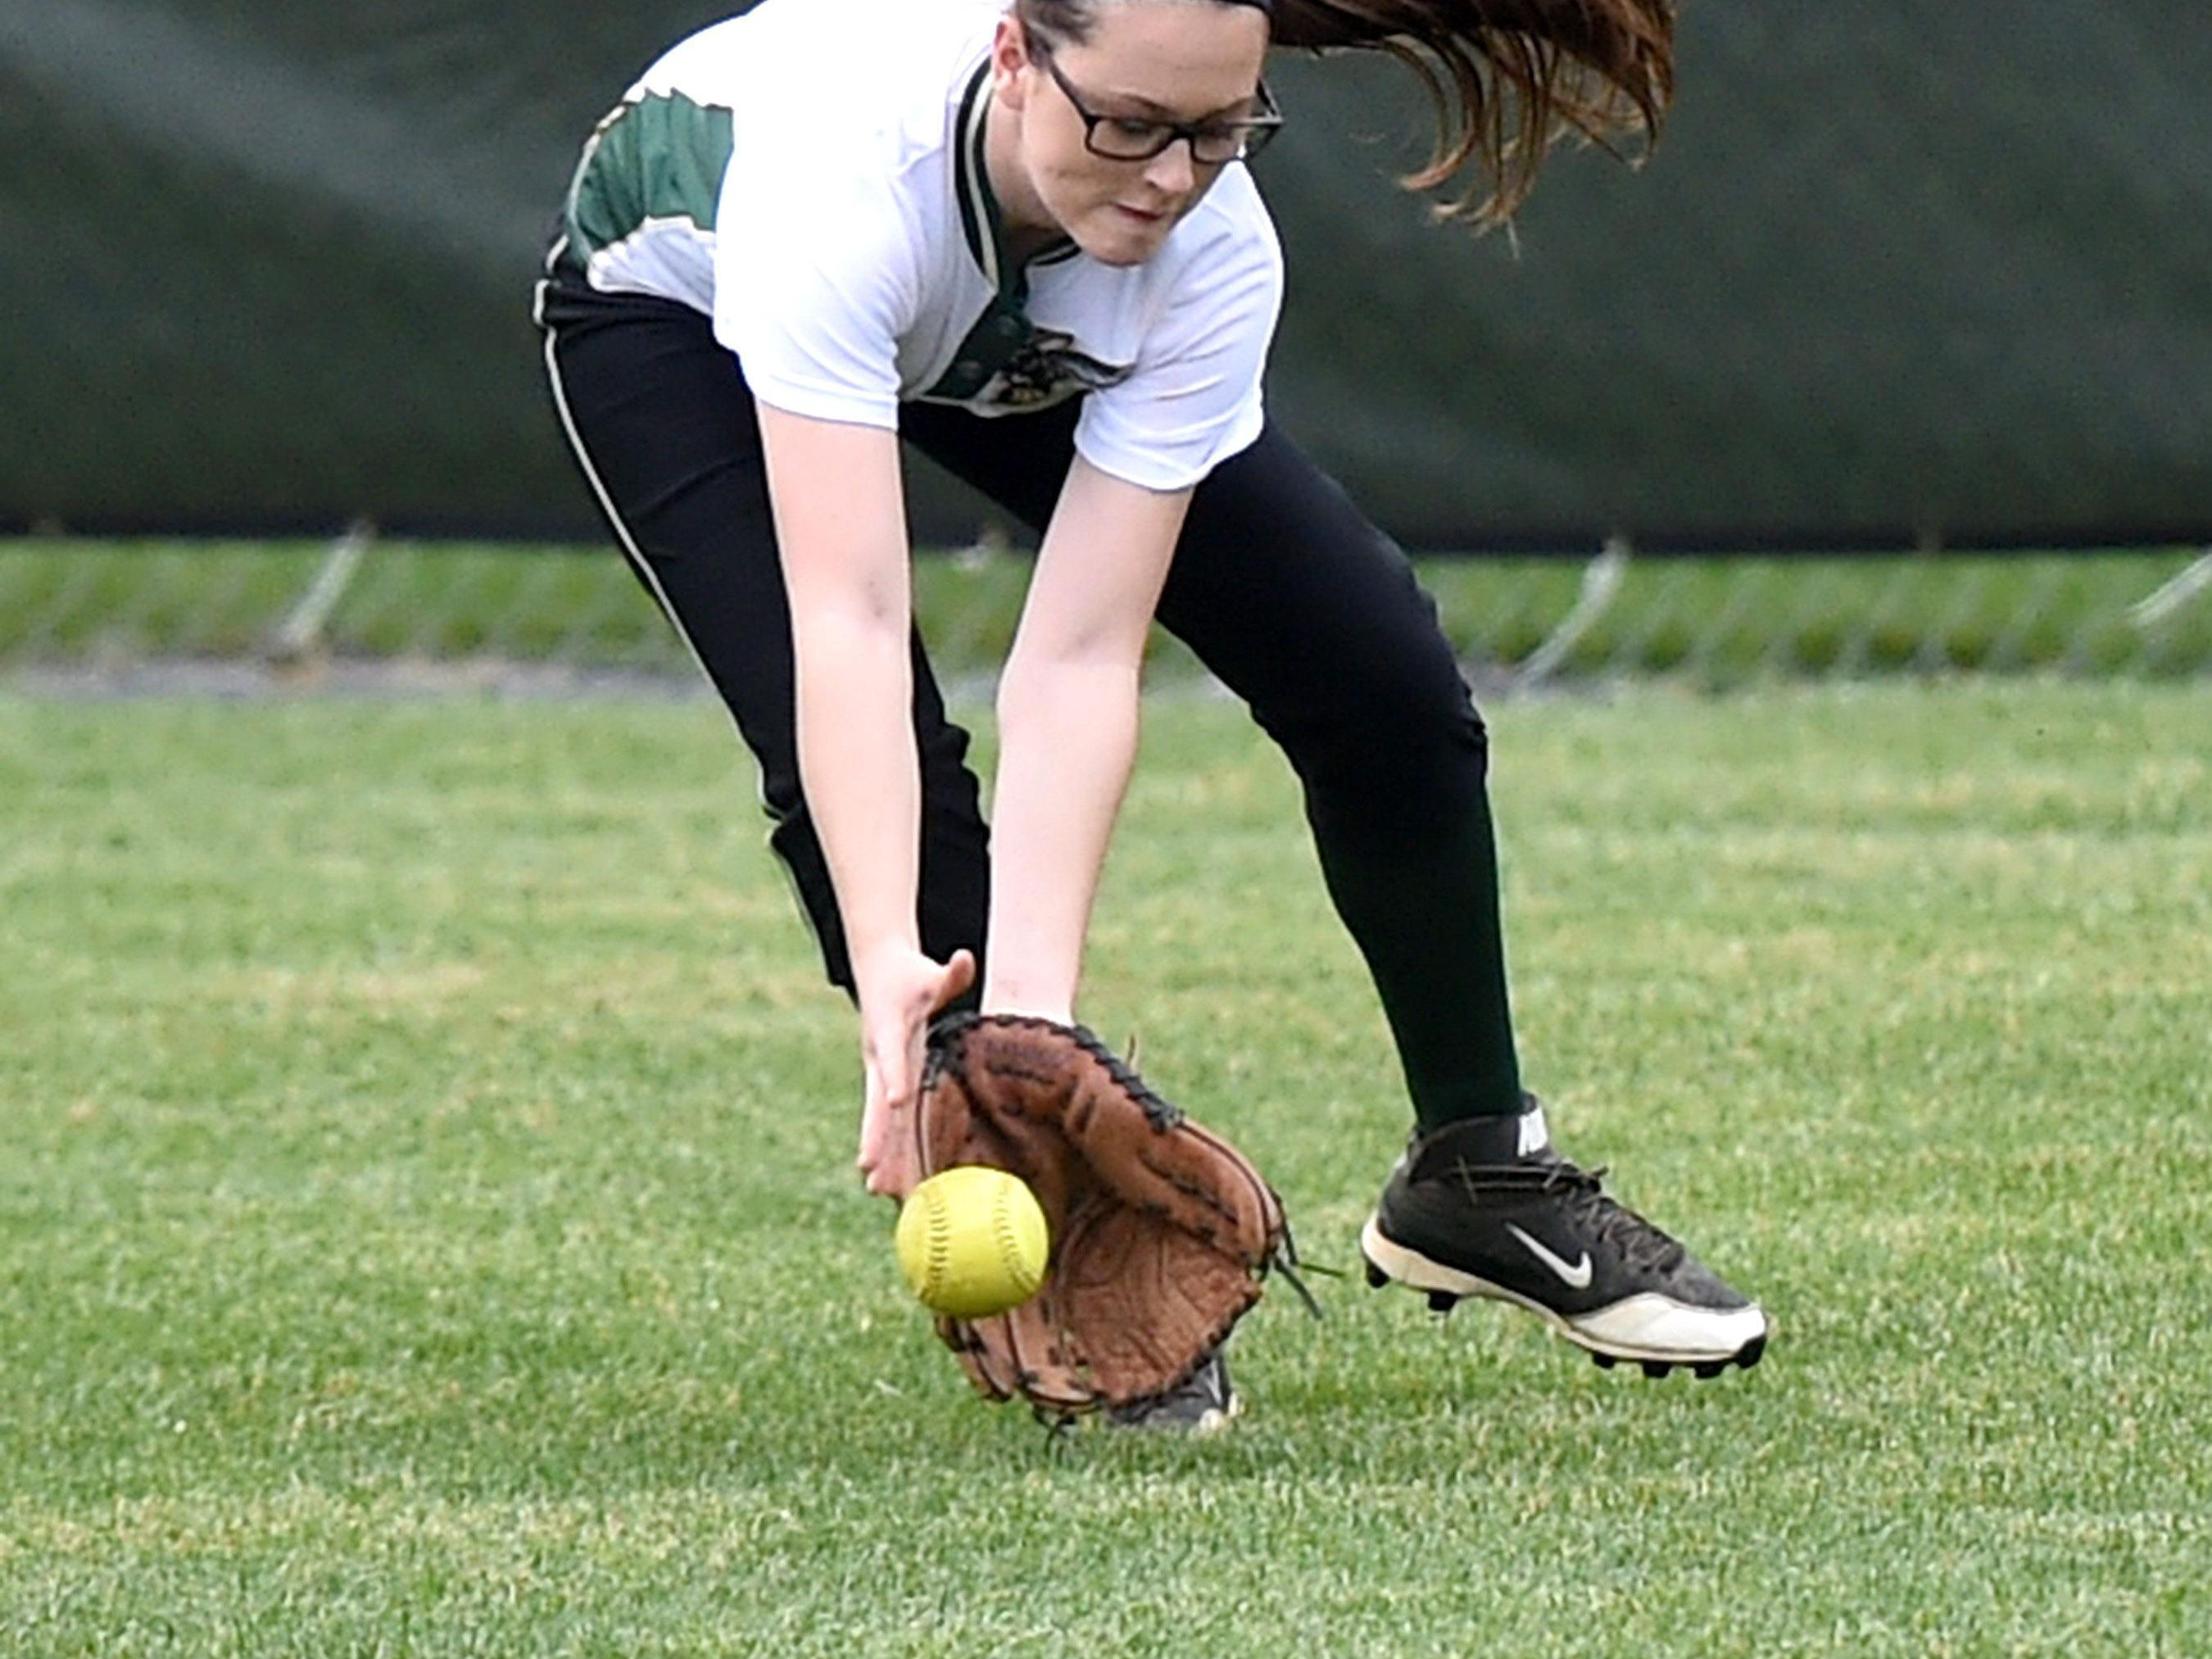 Wilson Memorial's Sarah Brown fields the ball in centerfield and will throw to second base during a softball game played in Fishersville on Friday, April 1, 2016.